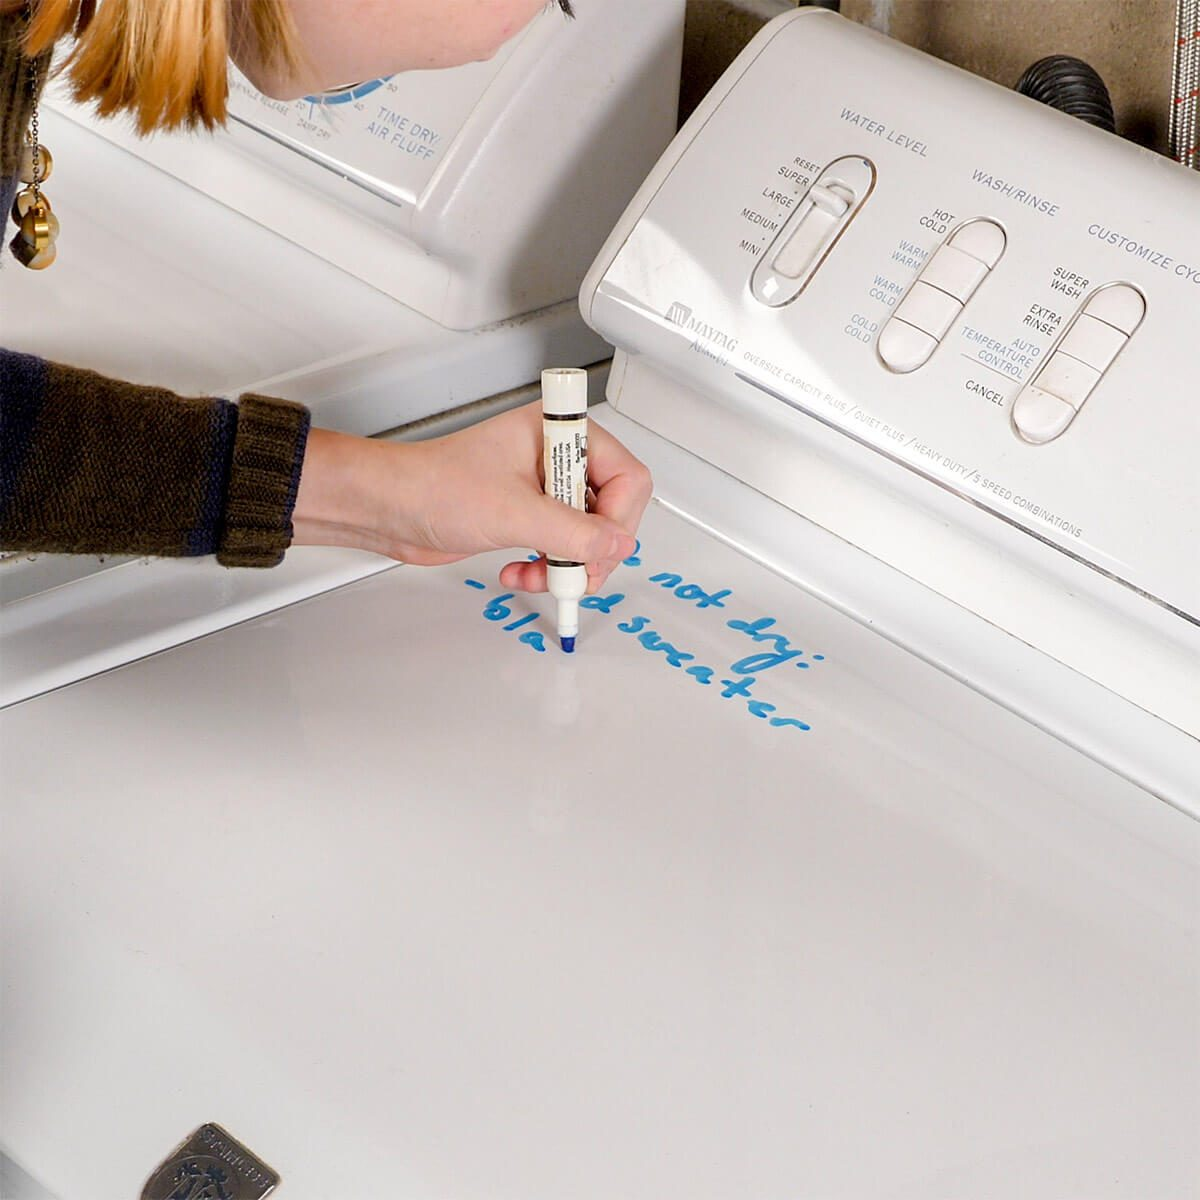 Write Notes on the Washer